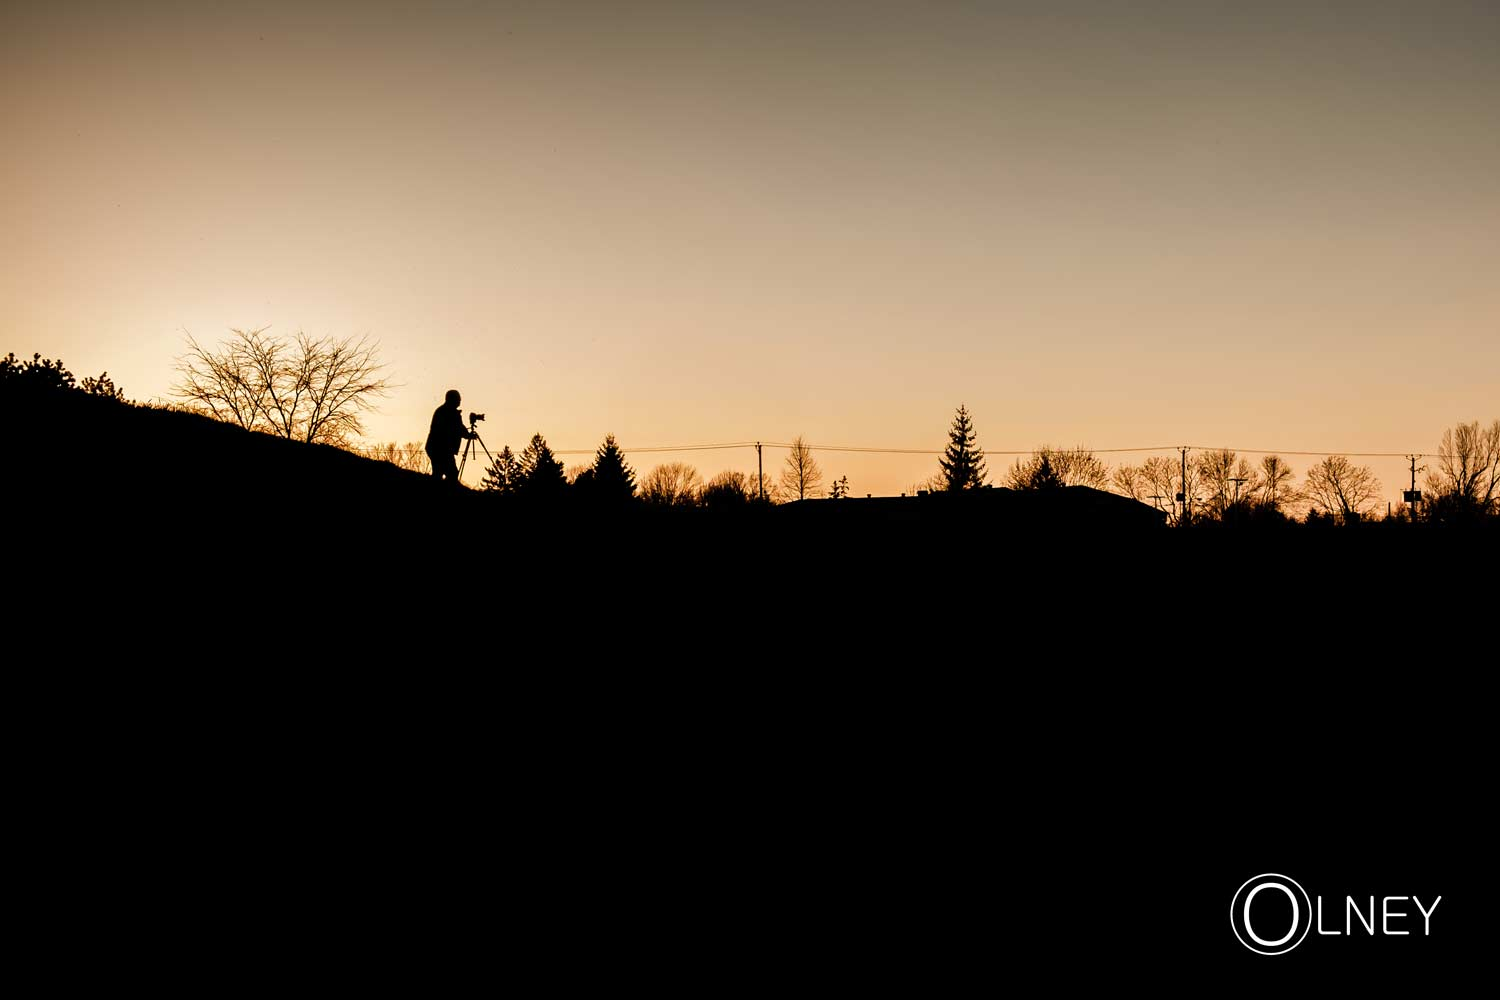 photgrapher silhouette against yellow sky